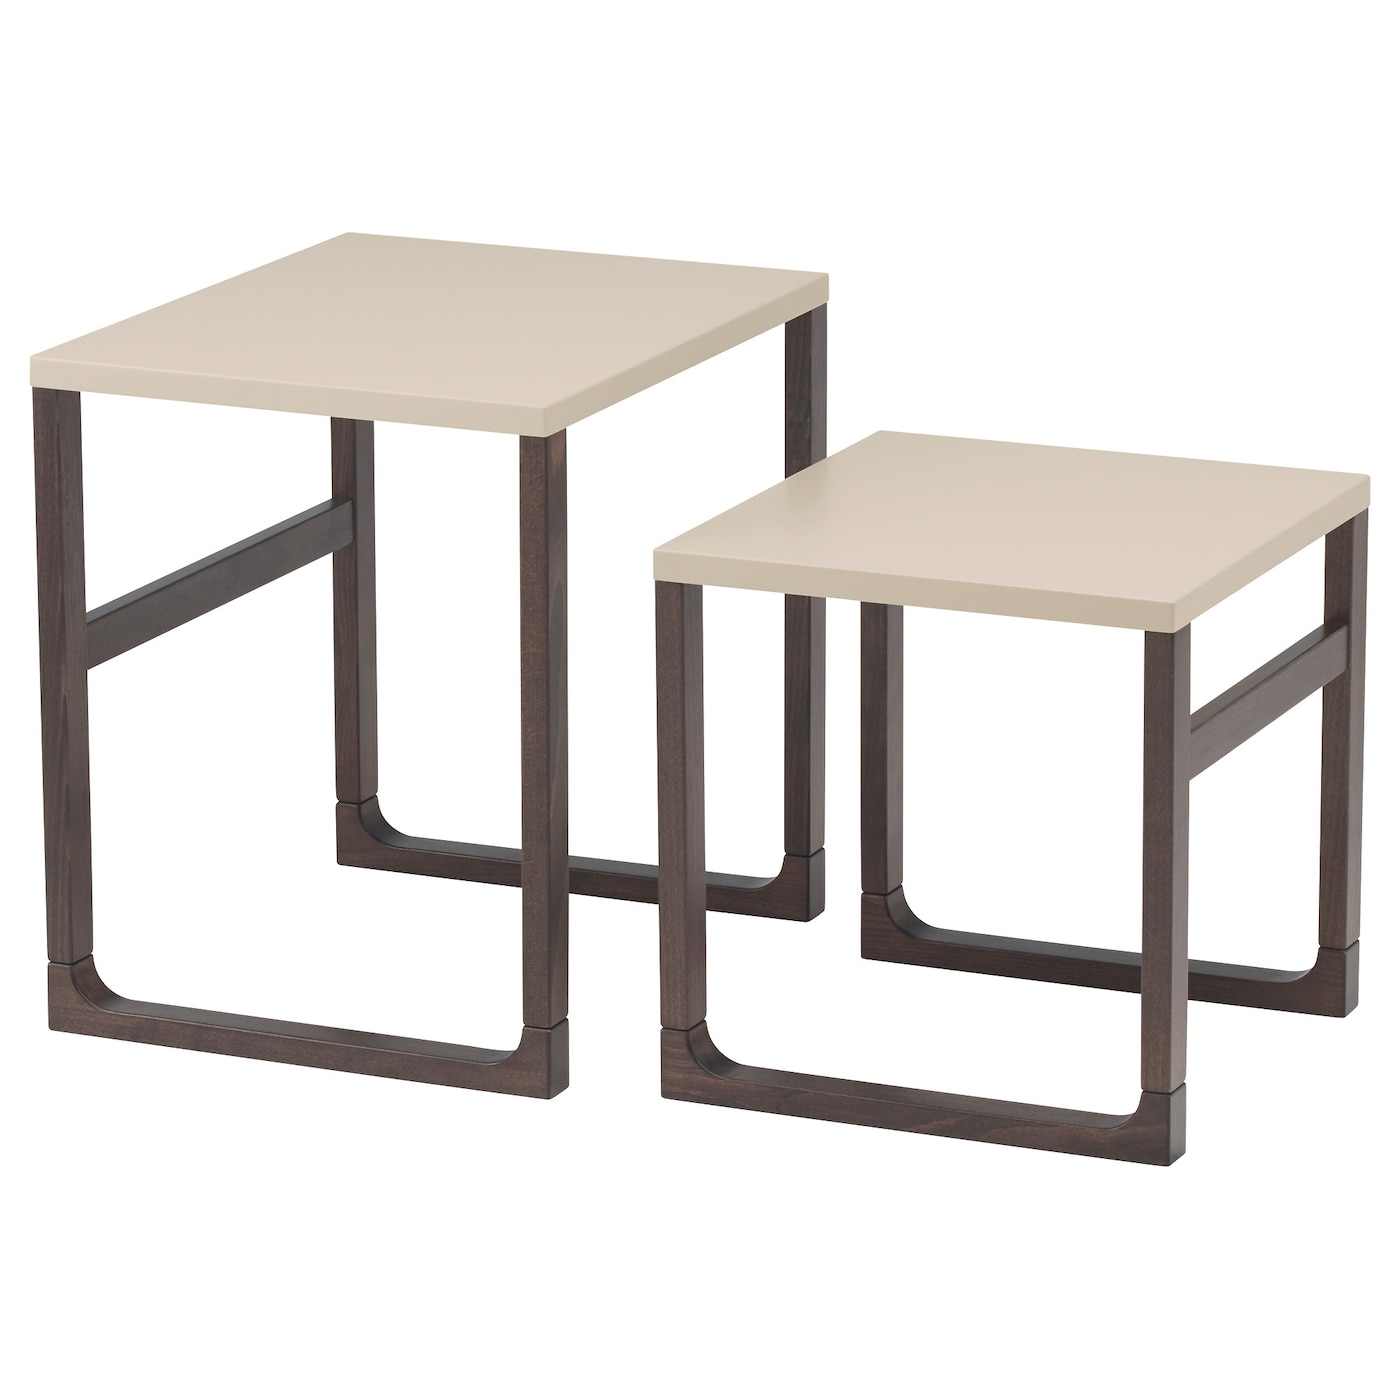 Rissna nest of tables set of 2 beige ikea for Table de fusion ikea